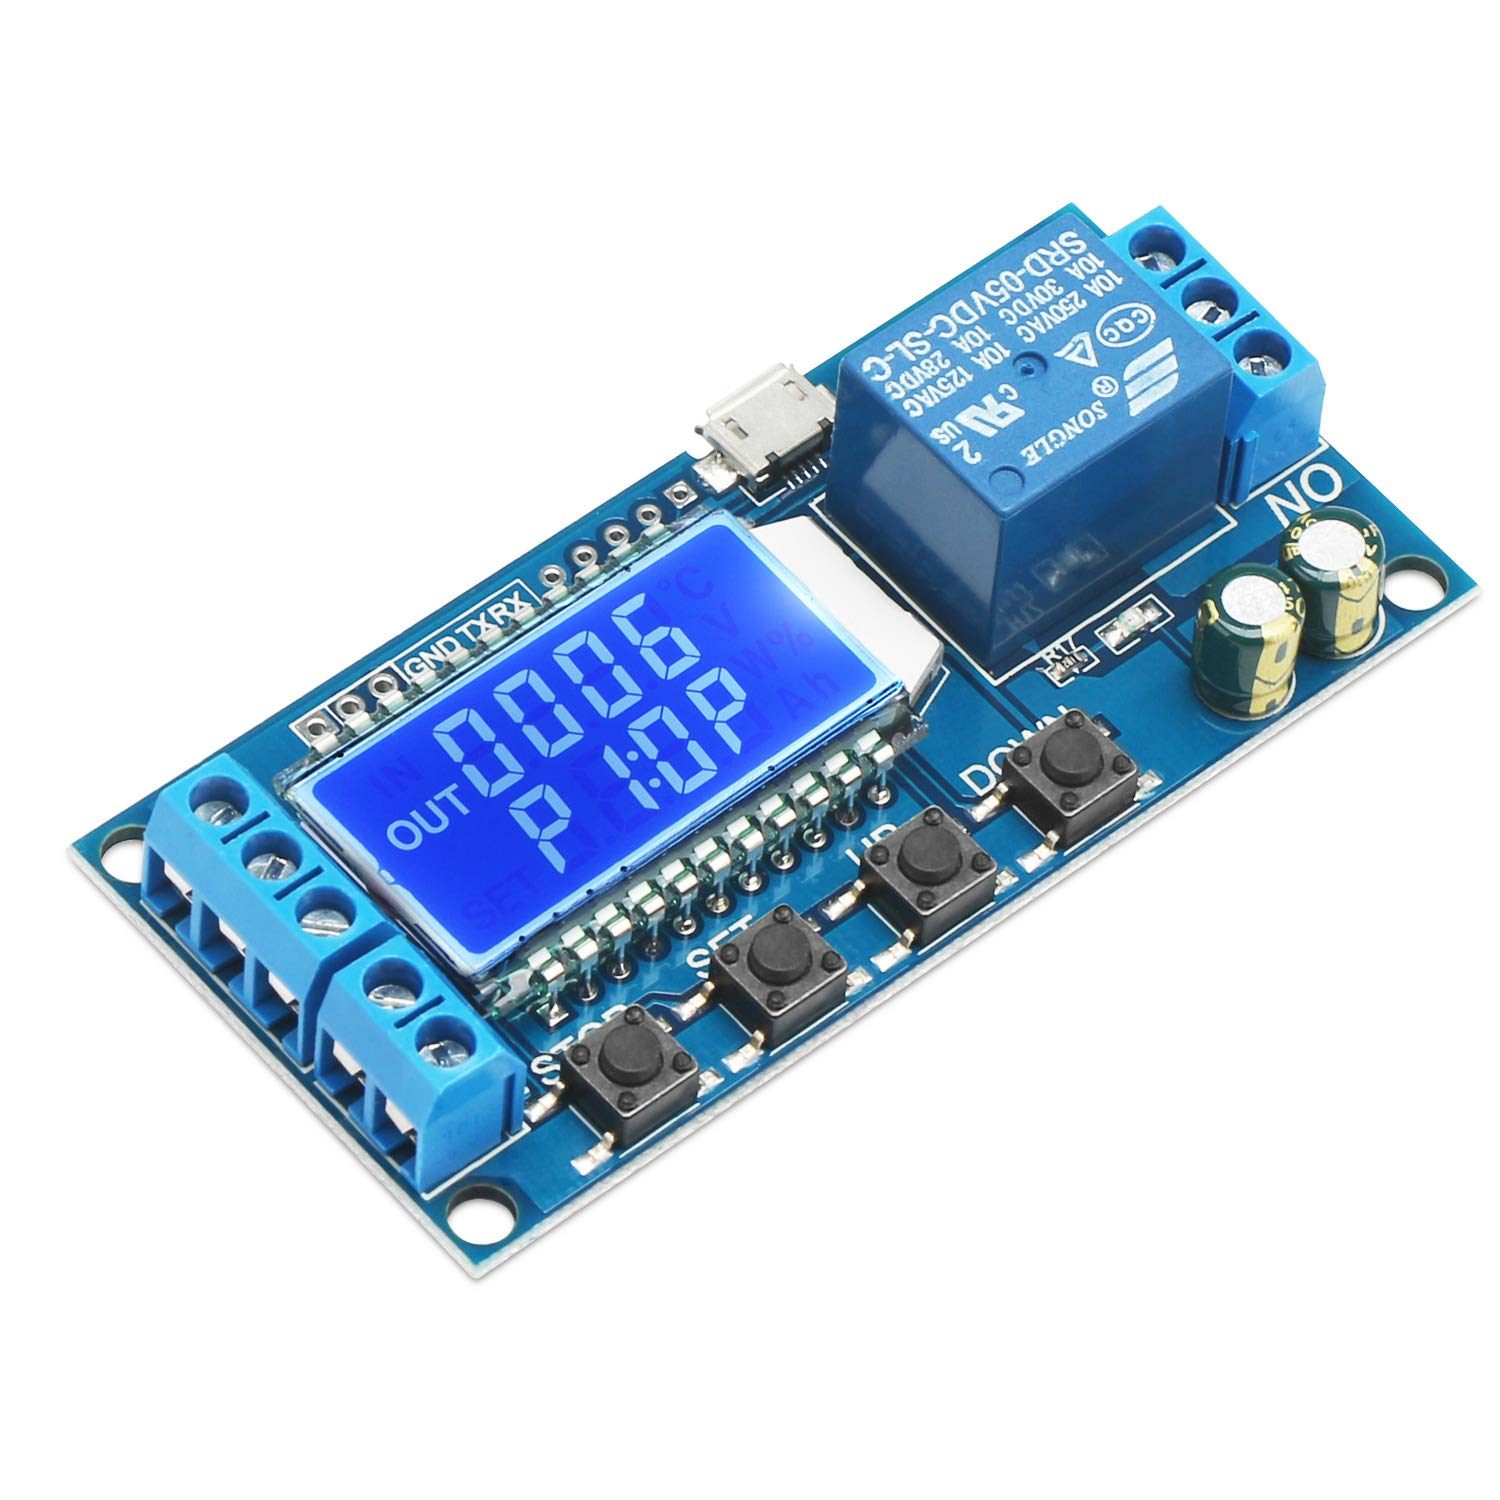 Timer Relay, DROK Time Delay Relay 5V 12V 24V Delay Controller Board Delay-off Cycle Timer 0.01s-9999mins Trigger Delay Switching Relay Module with LCD Display Support Micro USB 5V Power Supply by DROK